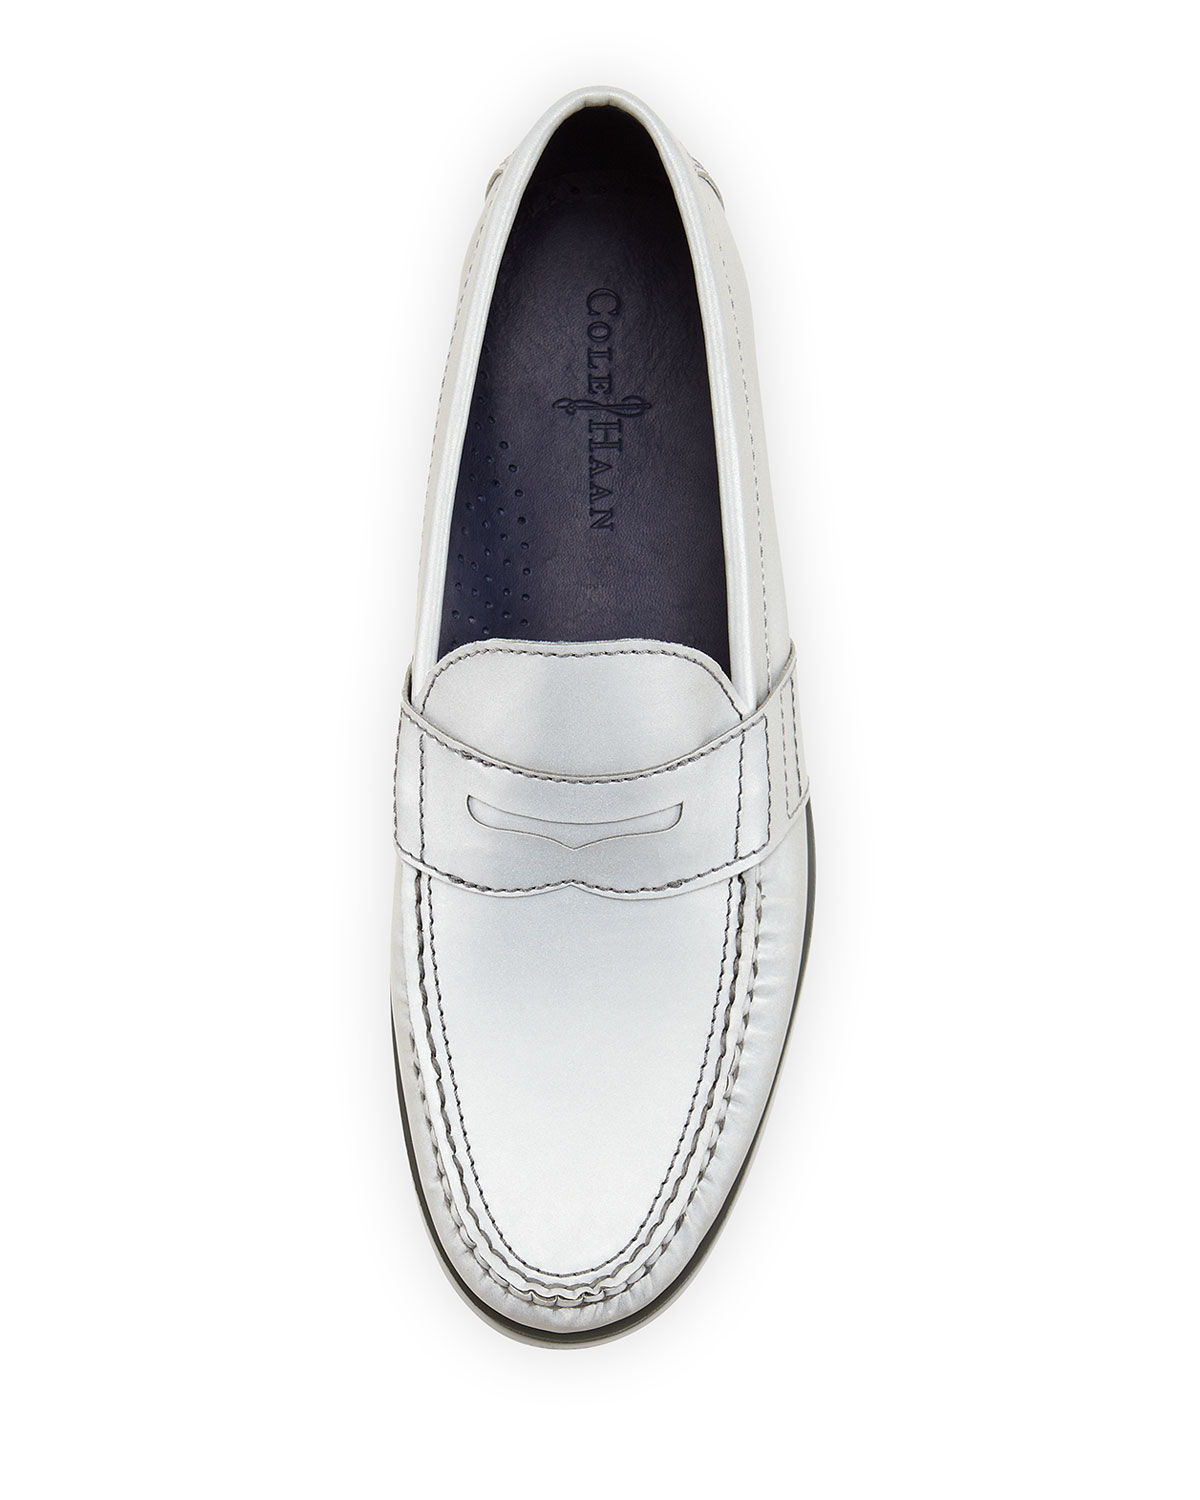 db350914f75 Lyst - Cole Haan Air Monroe Reflective Penny Loafer Silver in ...